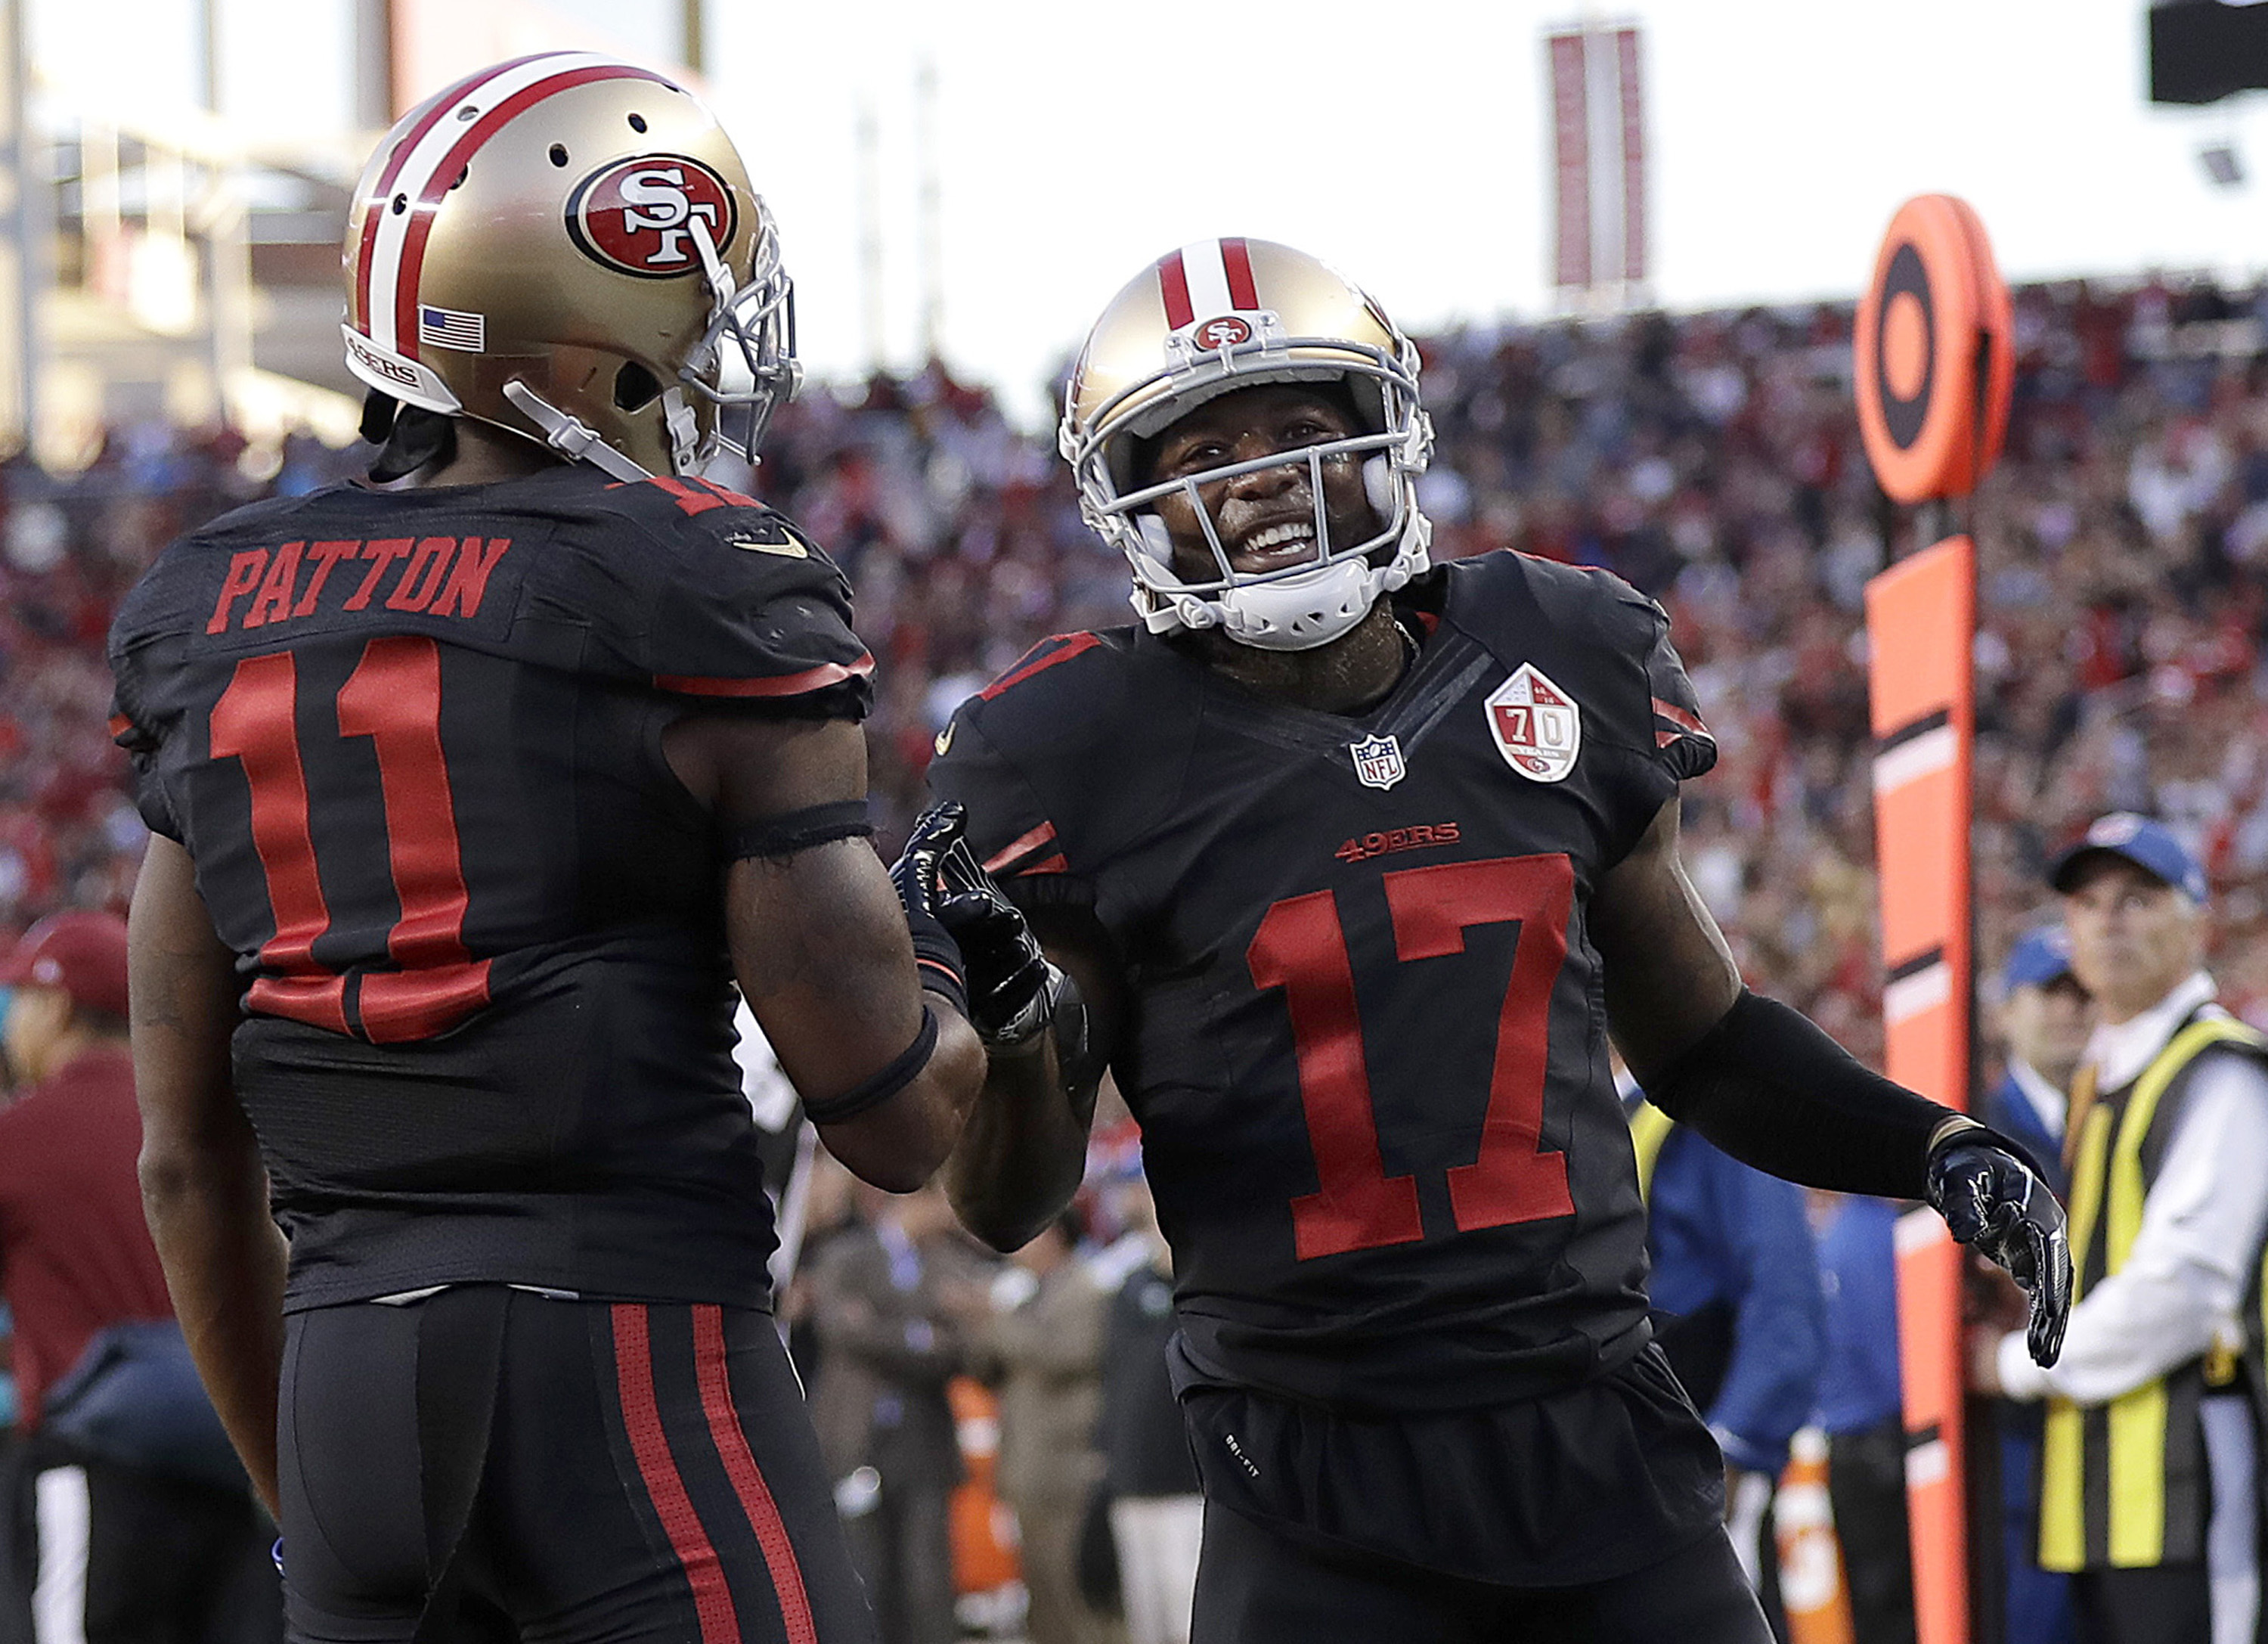 FILE - In this Oct. 6, 2016, file photo, San Francisco 49ers wide receiver Jeremy Kerley (17) is congratulated by Quinton Patton (11) after scoring on a reception during the first half of an NFL football game against the Arizona Cardinals, in Santa Clara,